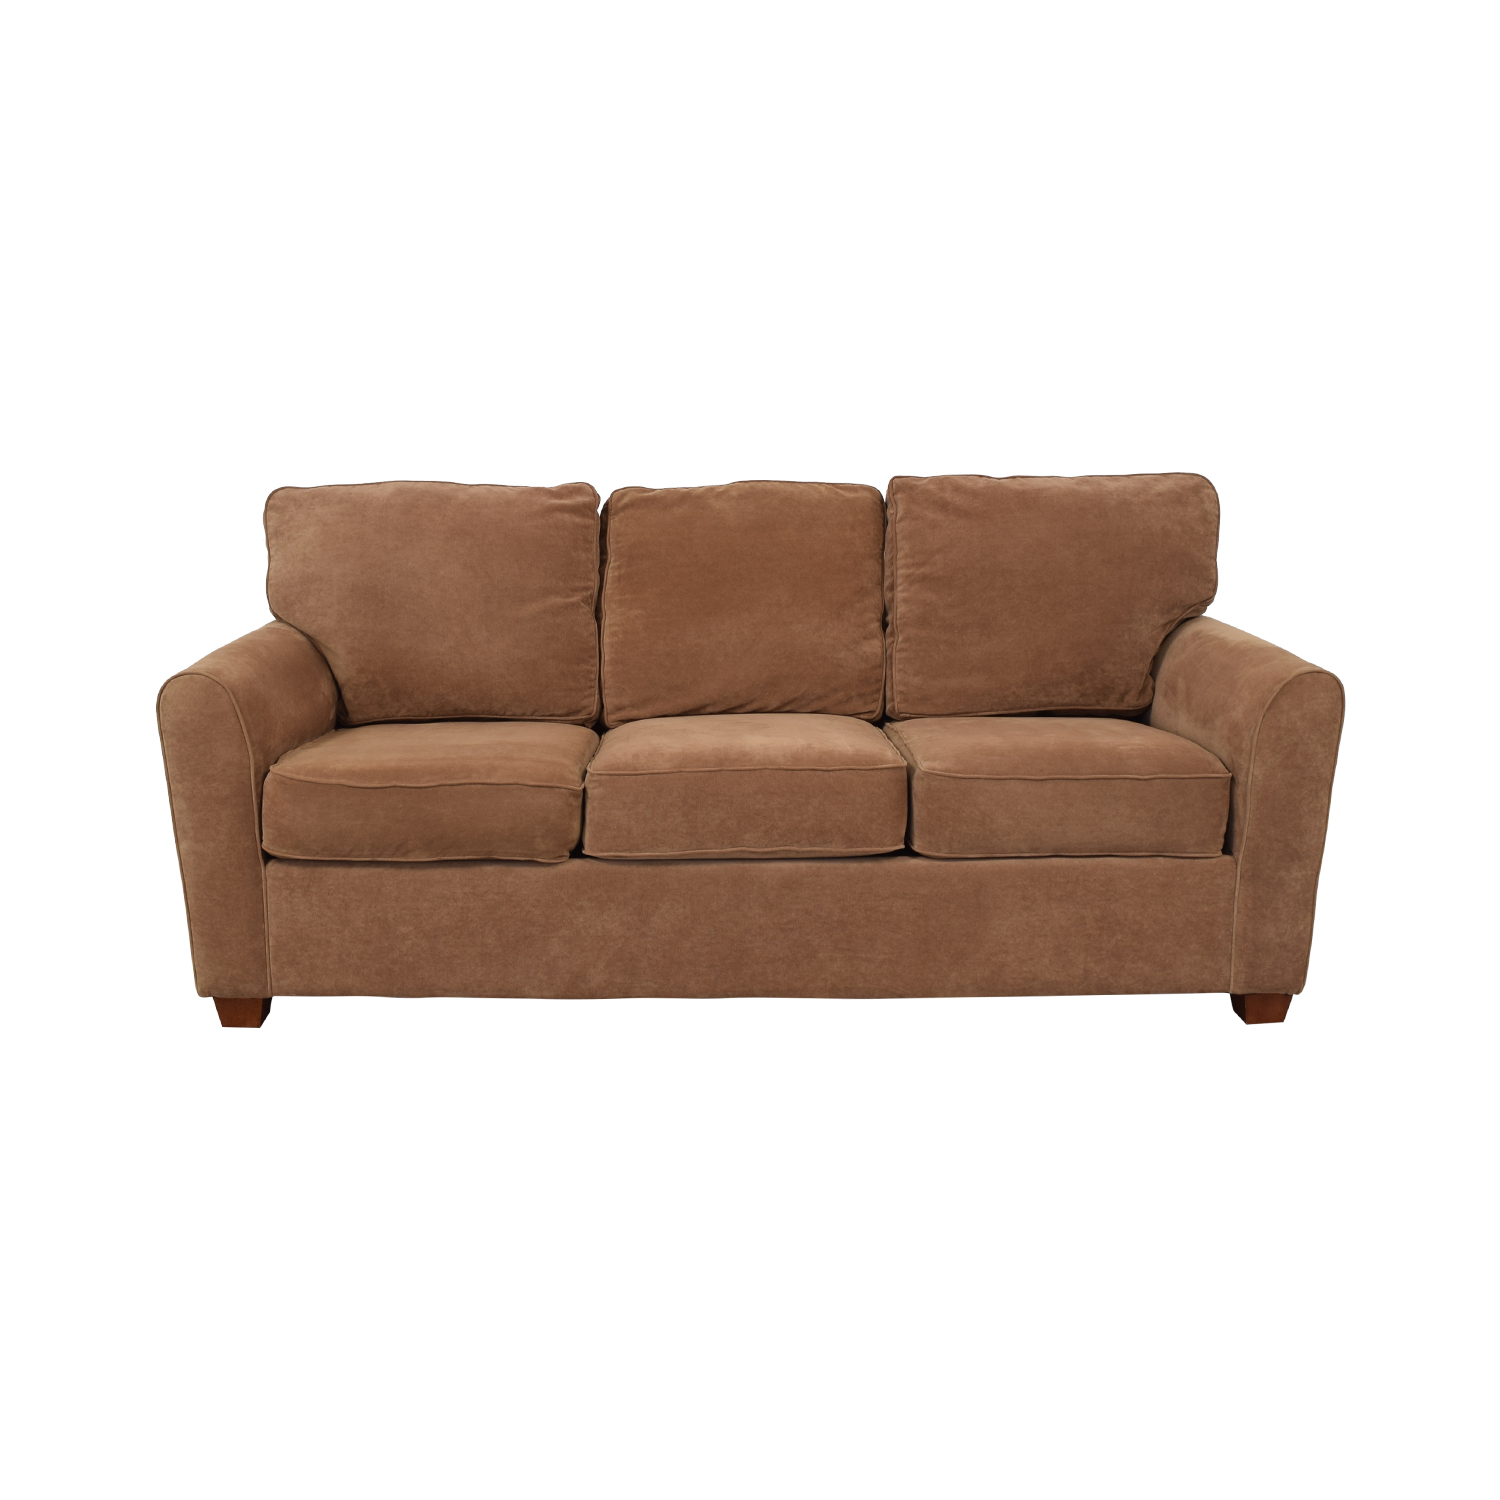 La-Z-Boy La-Z-Boy Stationary Three-Cushion Sofa second hand